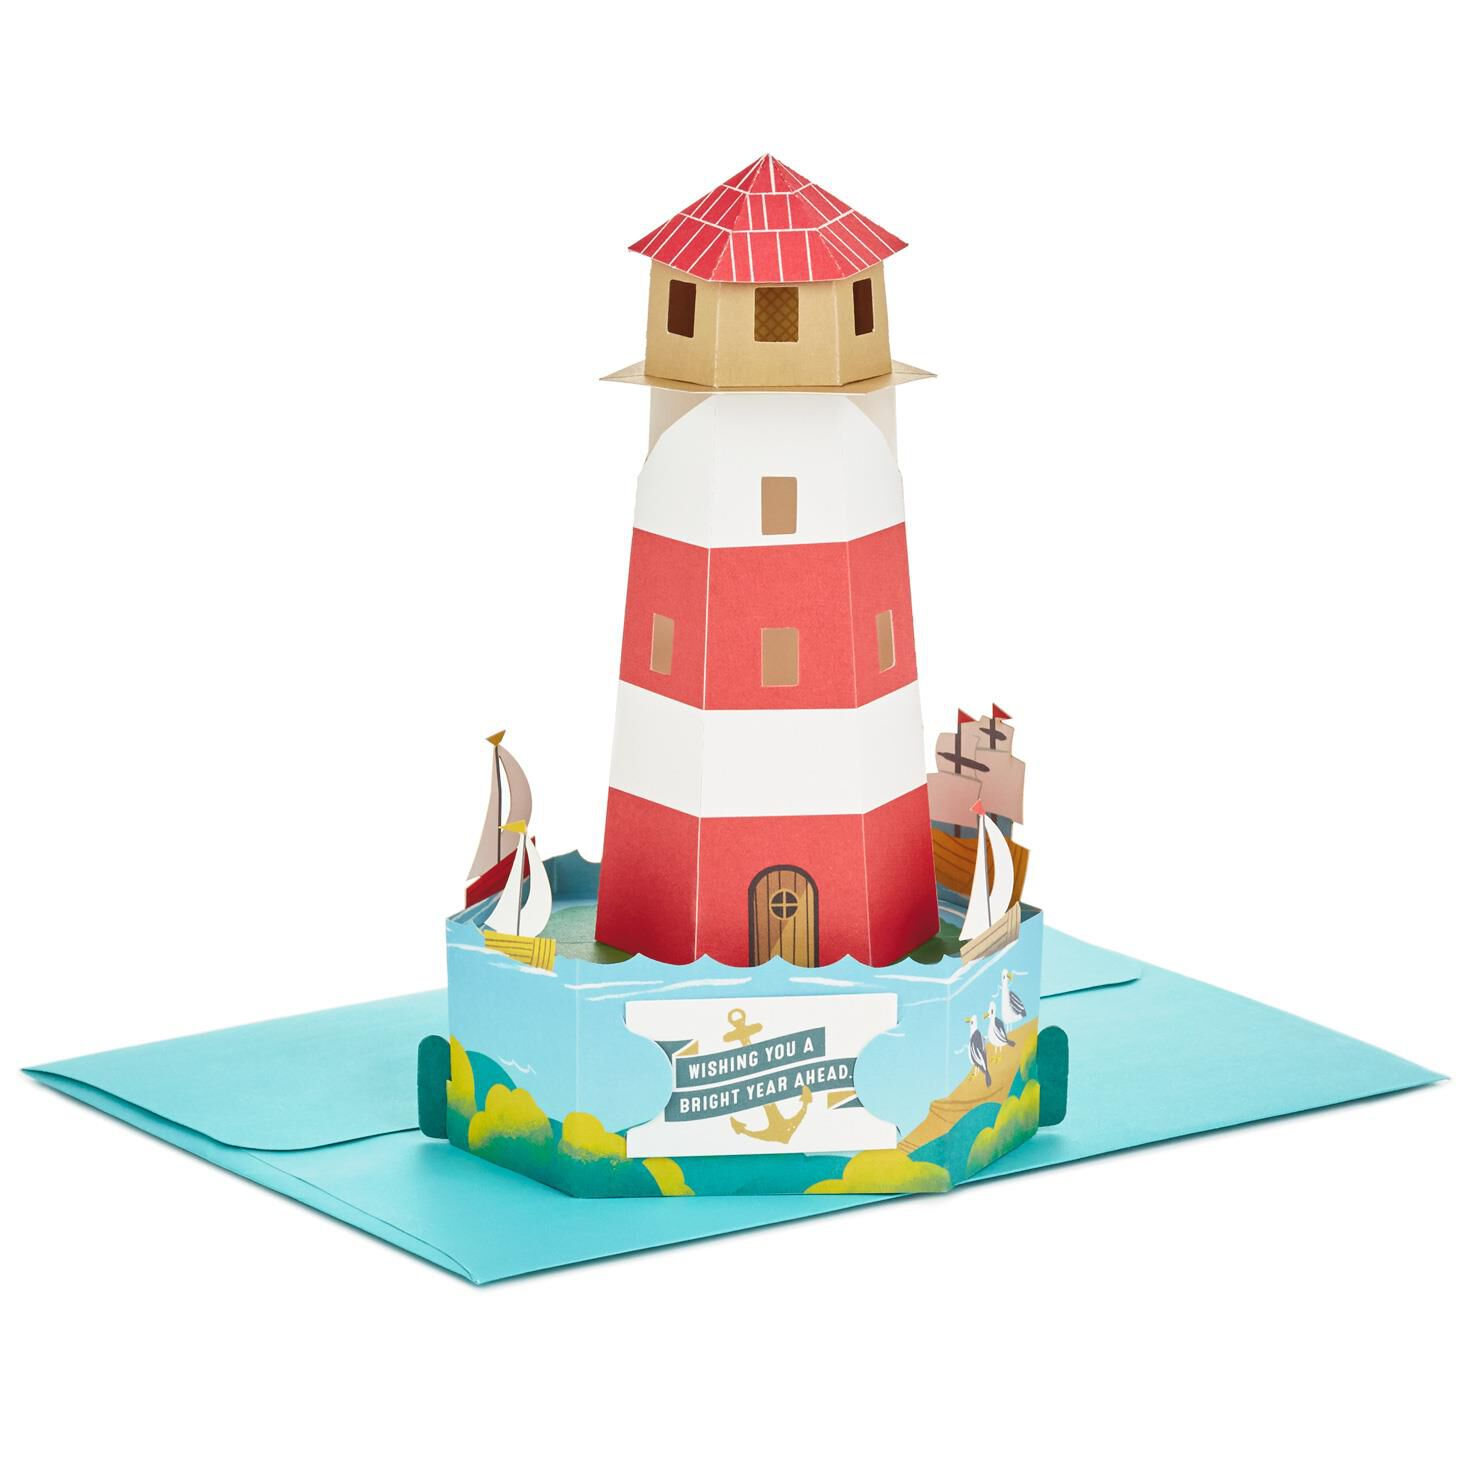 Bright wishes lighthouse pop up birthday card greeting cards bright wishes lighthouse pop up birthday card greeting cards hallmark kristyandbryce Choice Image